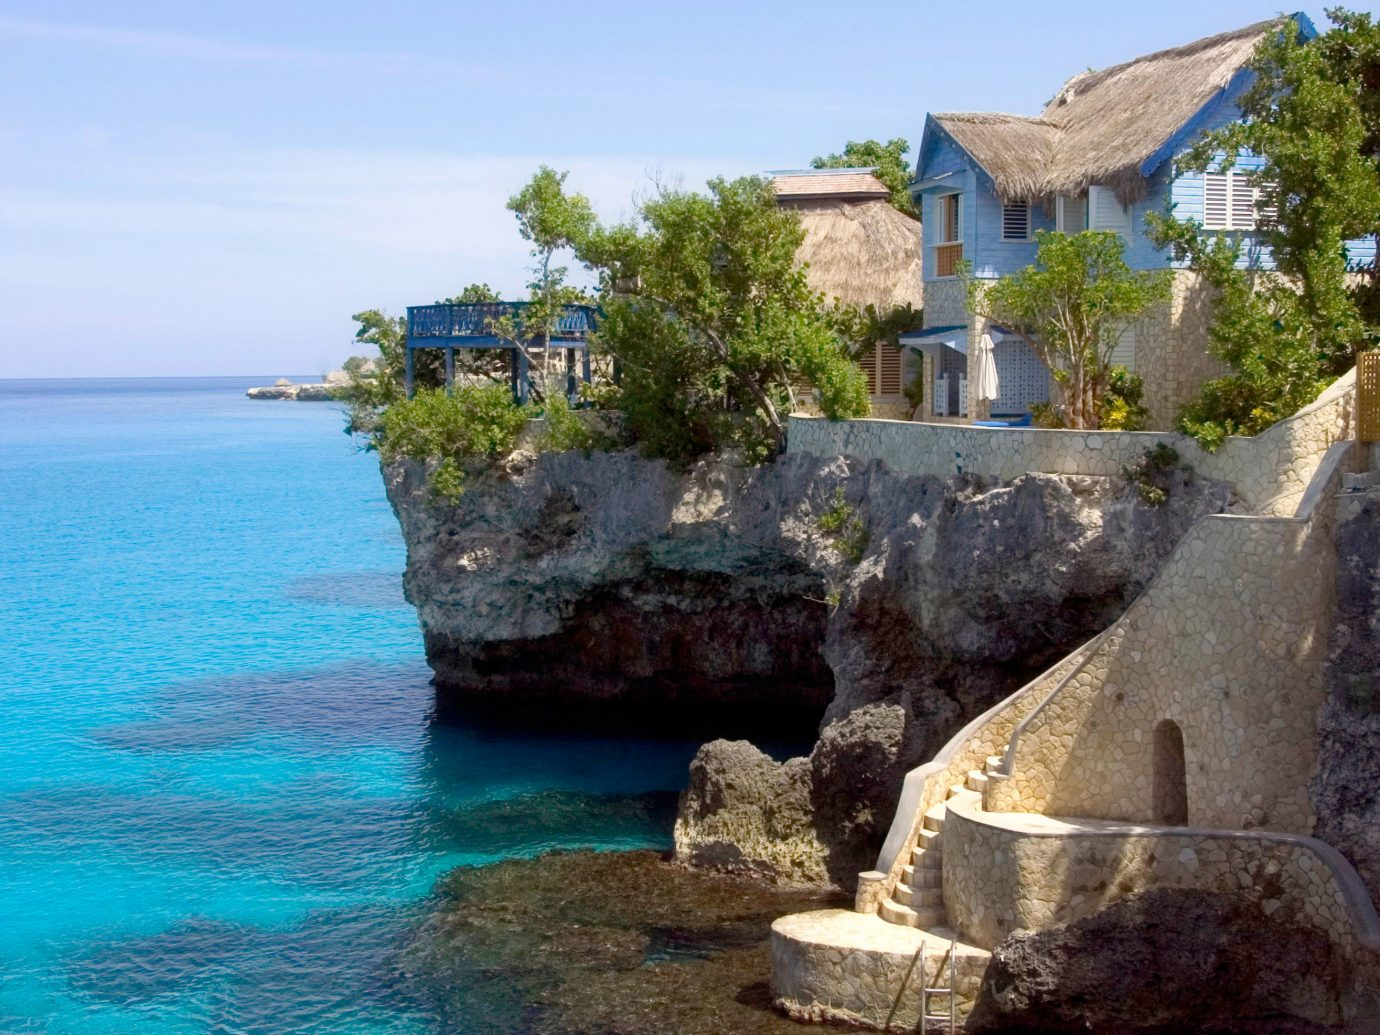 Exterior view of The Caves in Jamaica